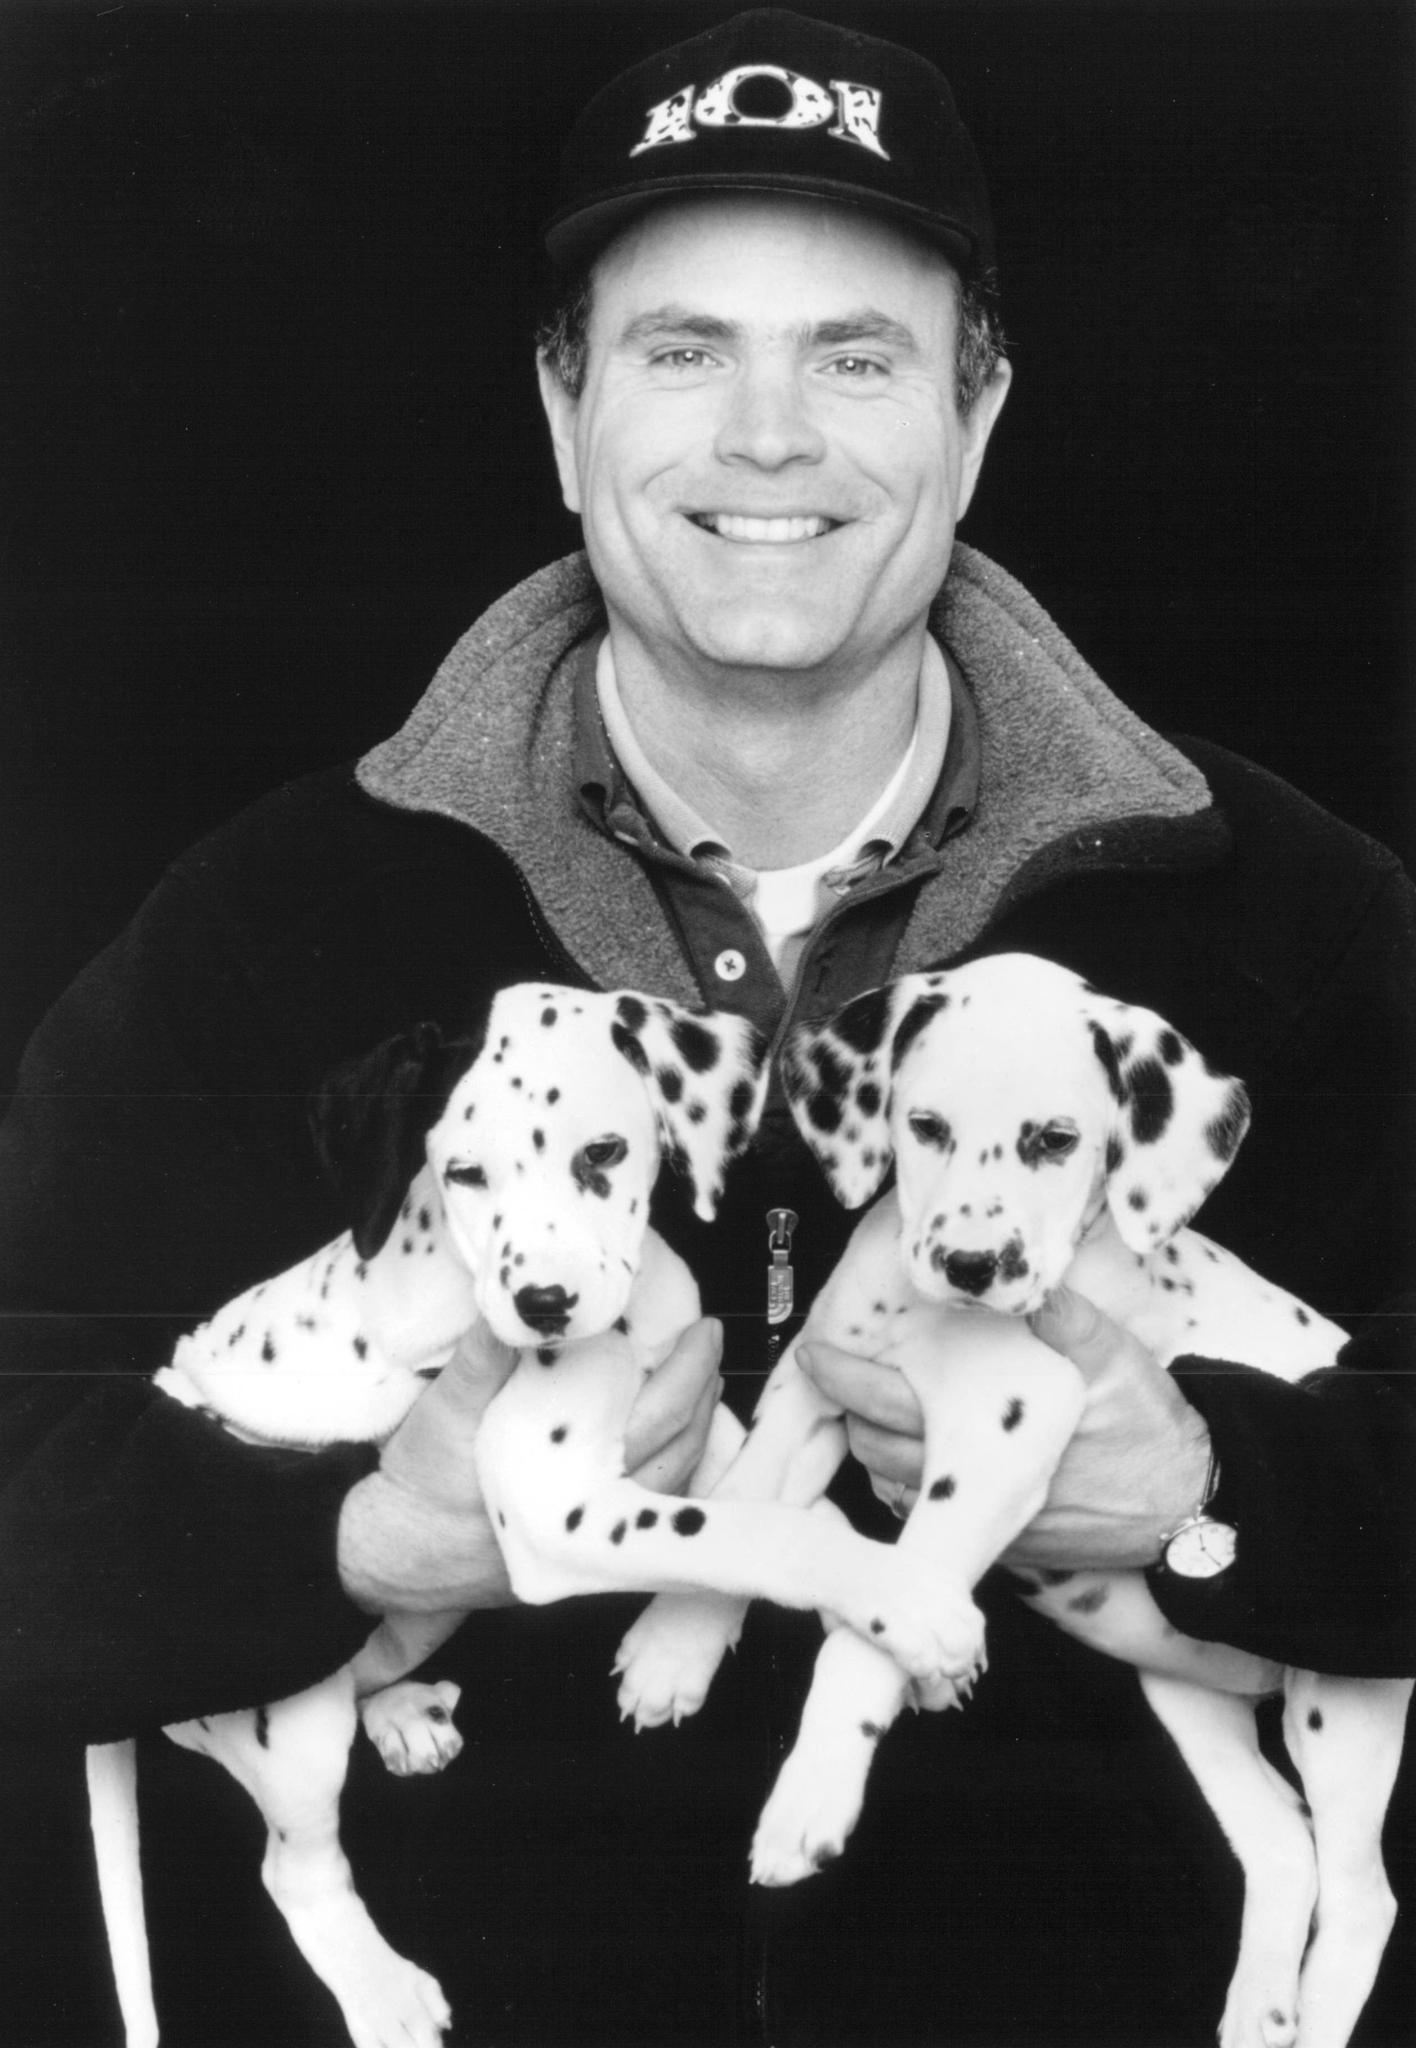 Stephen Herek in 101 Dalmatians (1996)